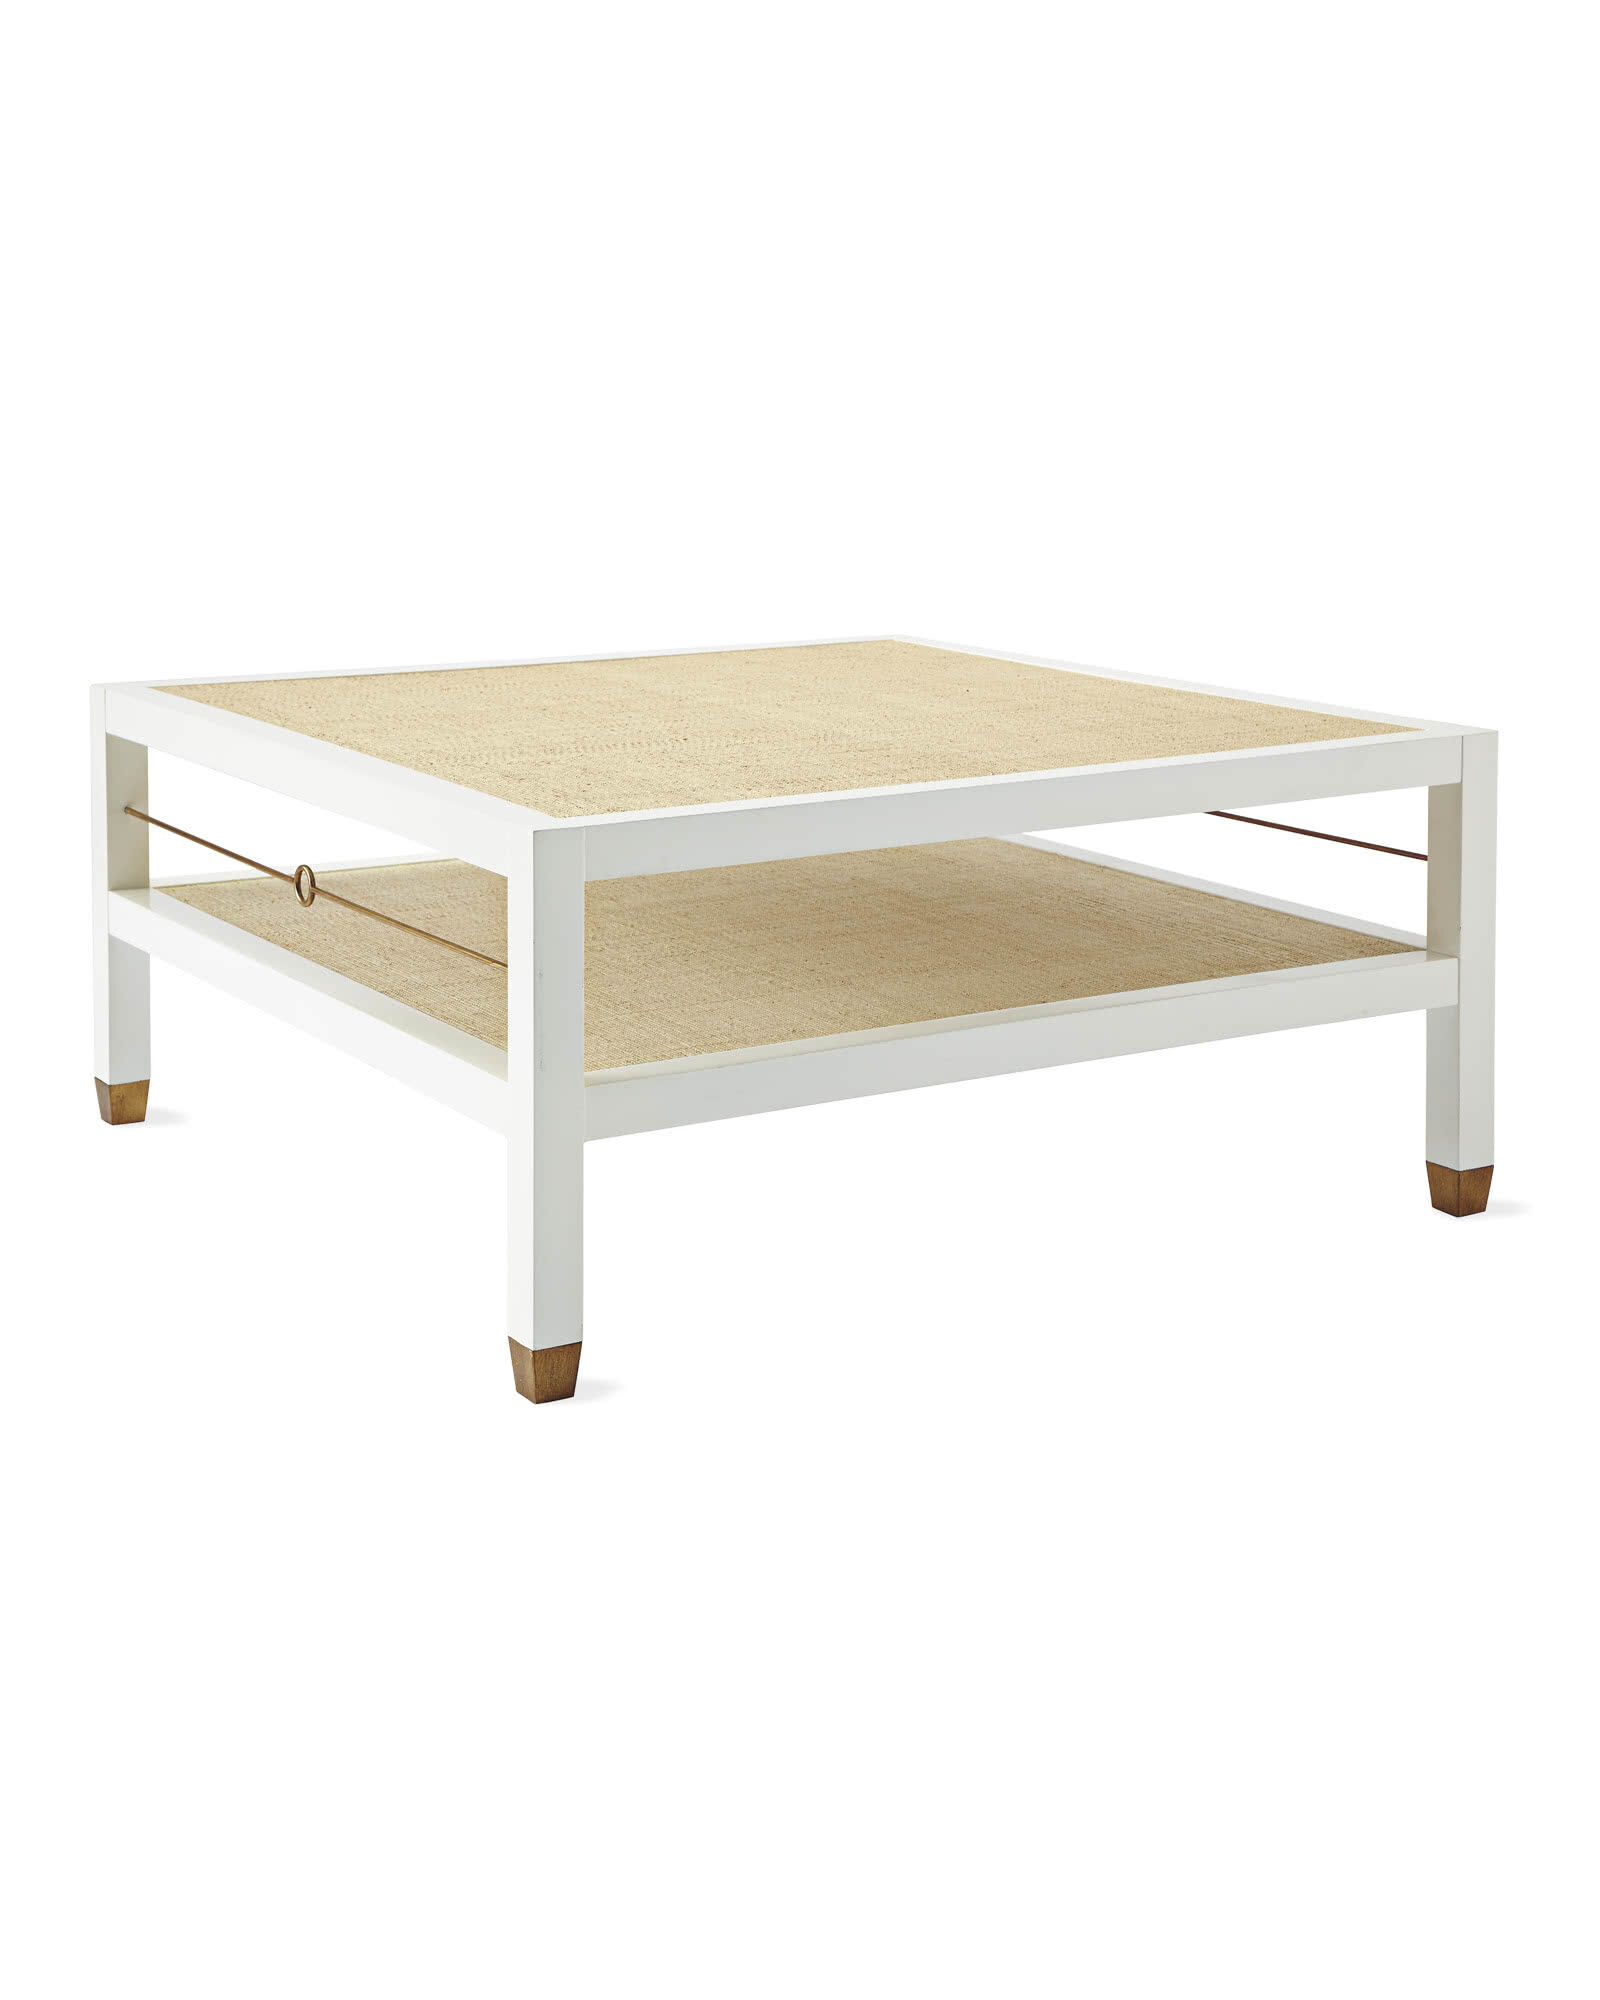 Cabot Square Coffee Table,